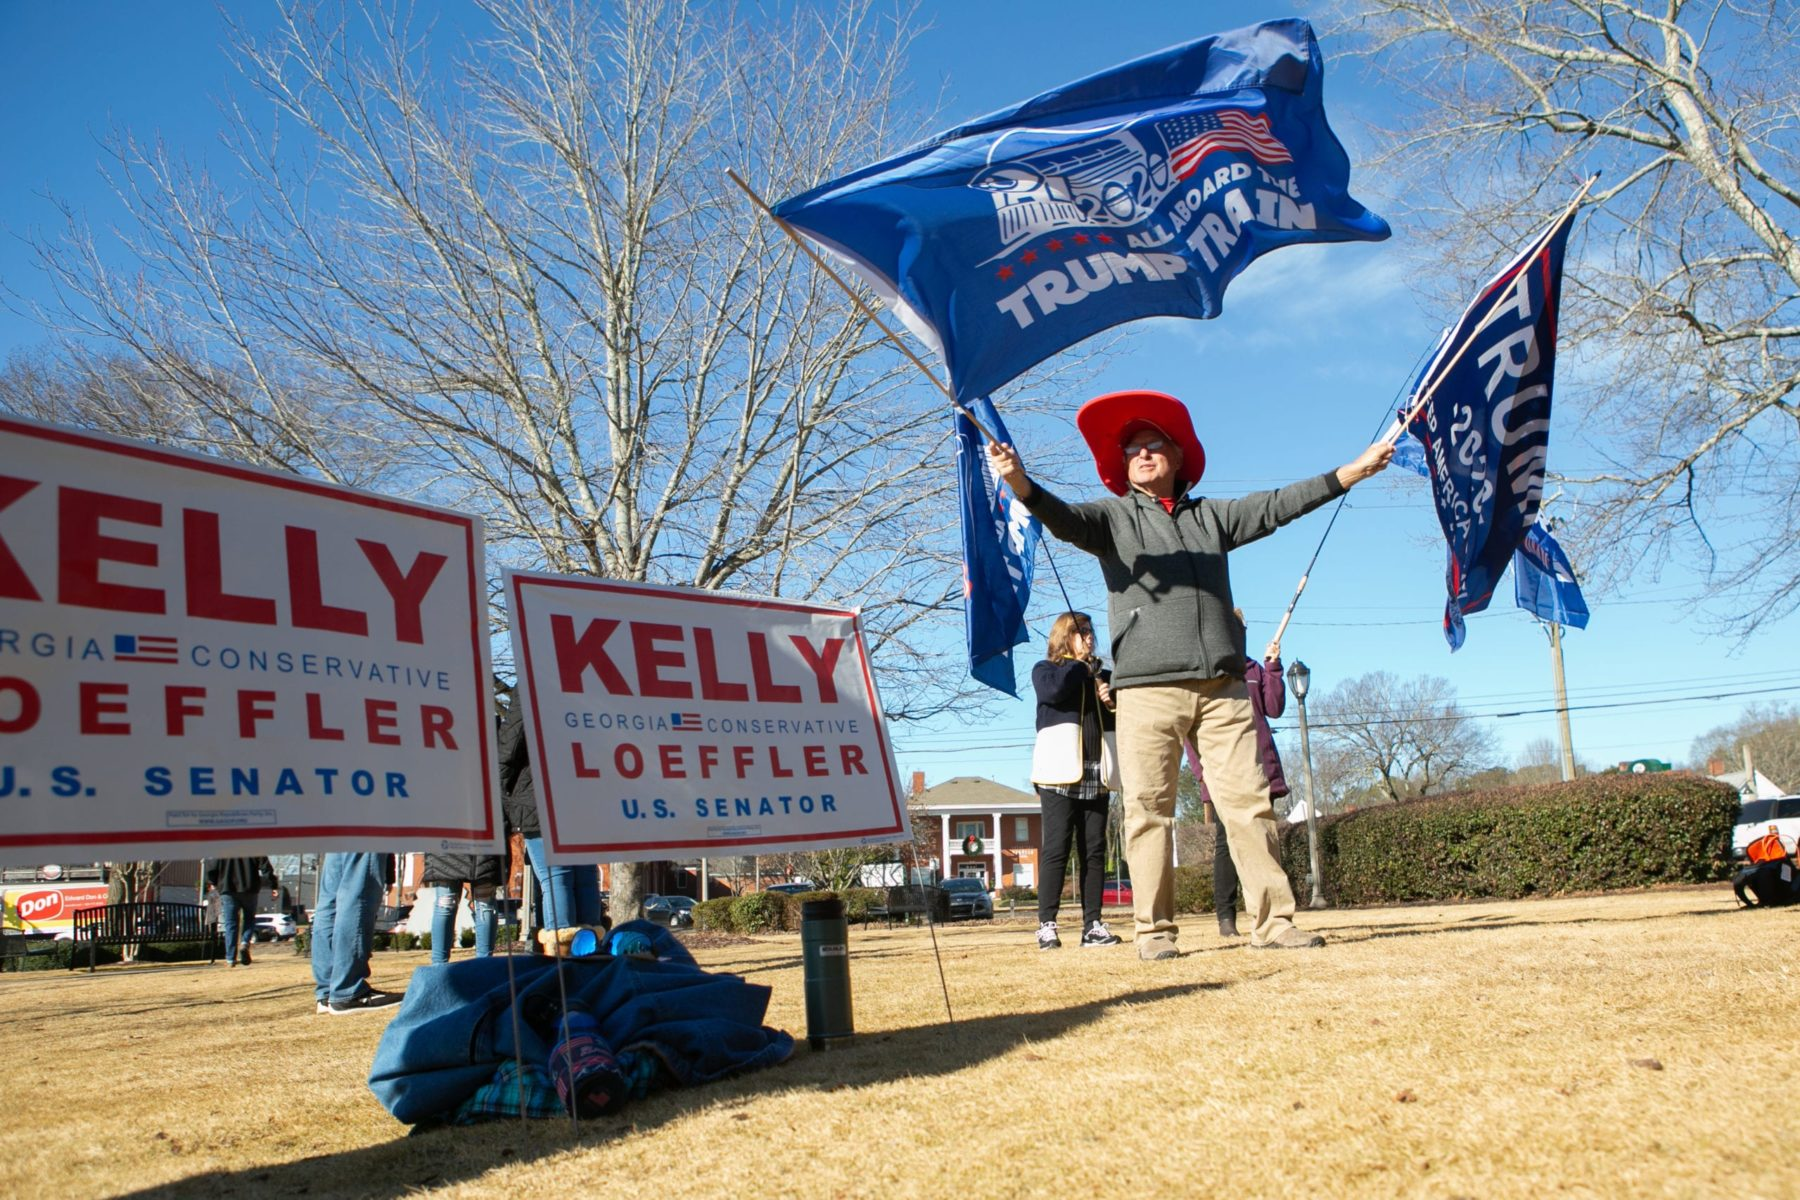 WOODSTOCK, GA - DECEMBER 29: Gary White waves Trump flags during a Senate Firewall campaign rally for Sen. Kelly Loeffler (R-GA) at The Park at City Center on December 29, 2020 in Woodstock, Georgia. Loeffler faces Democratic Senate candidate Raphael Warnock in the runoff election that will determine control of the U.S. Senate. With a week until the January 5th runoff election, candidates continue to campaign throughout Georgia. (Photo by Jessica McGowan/Getty Images)